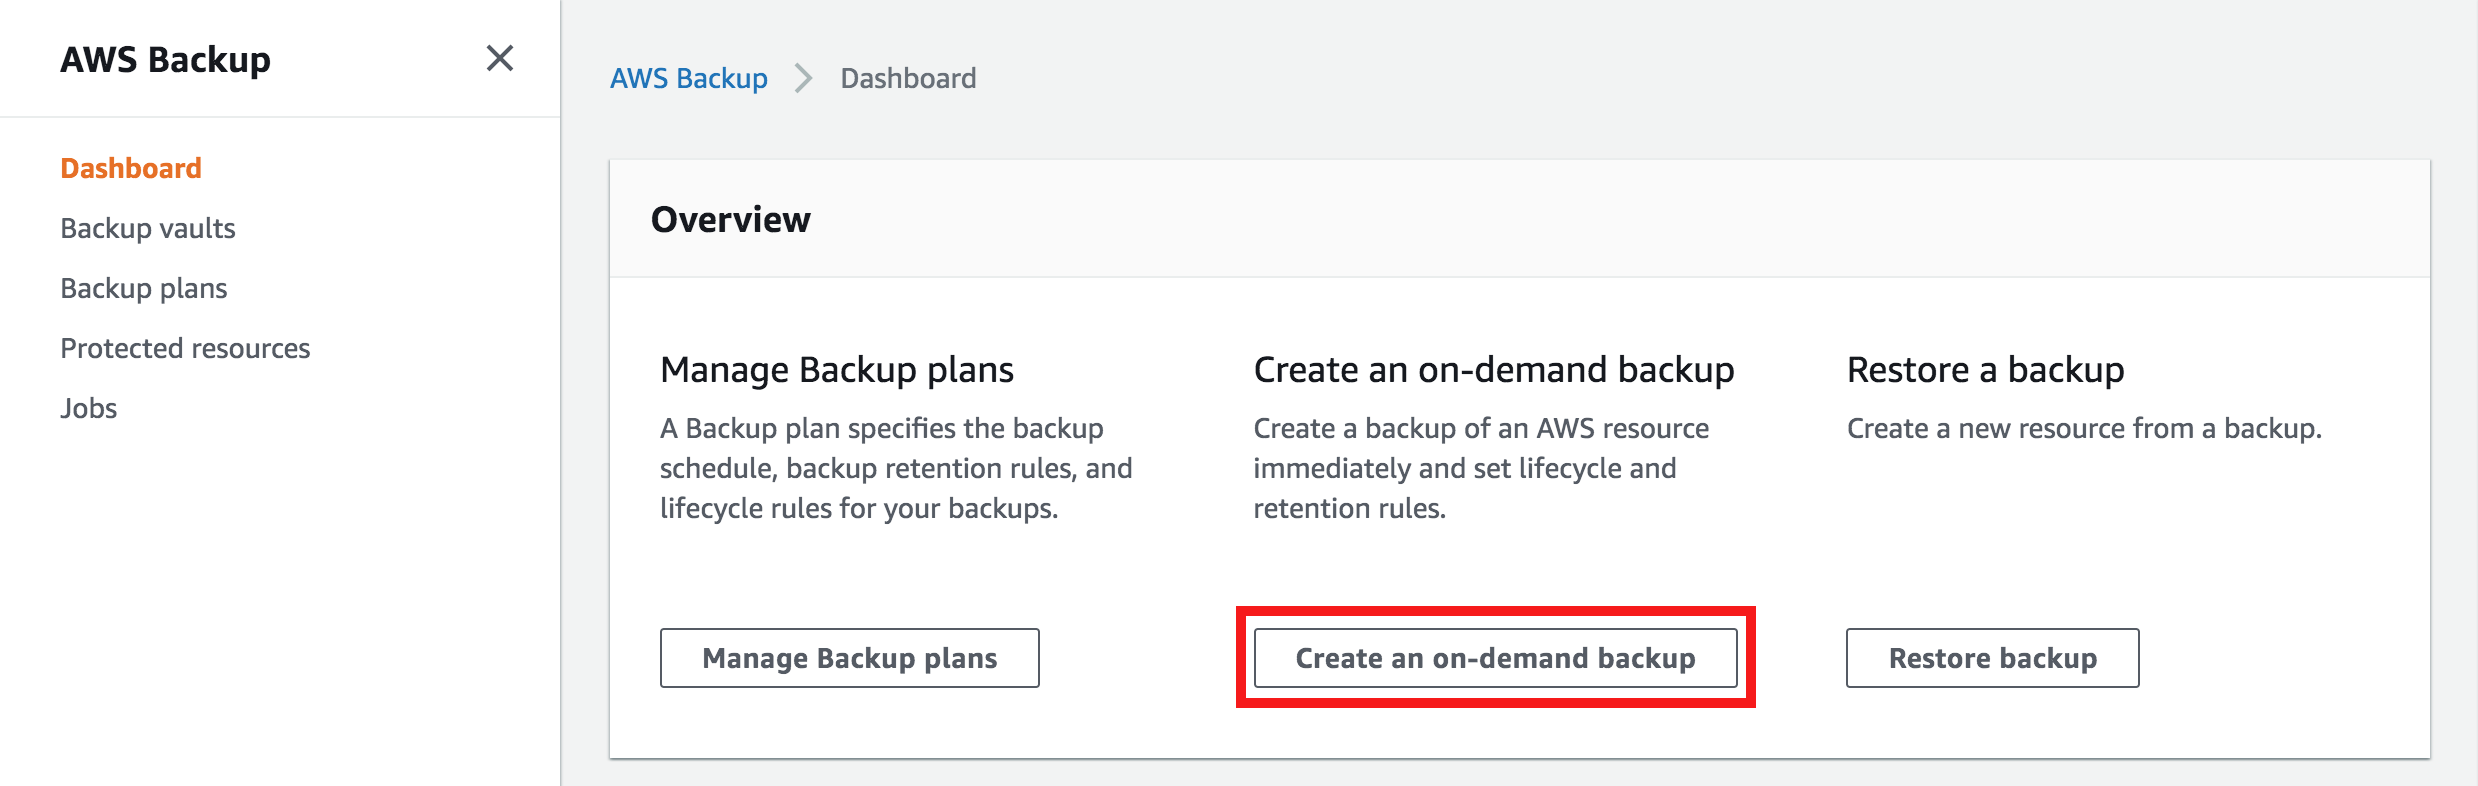 create-on-demand-backup